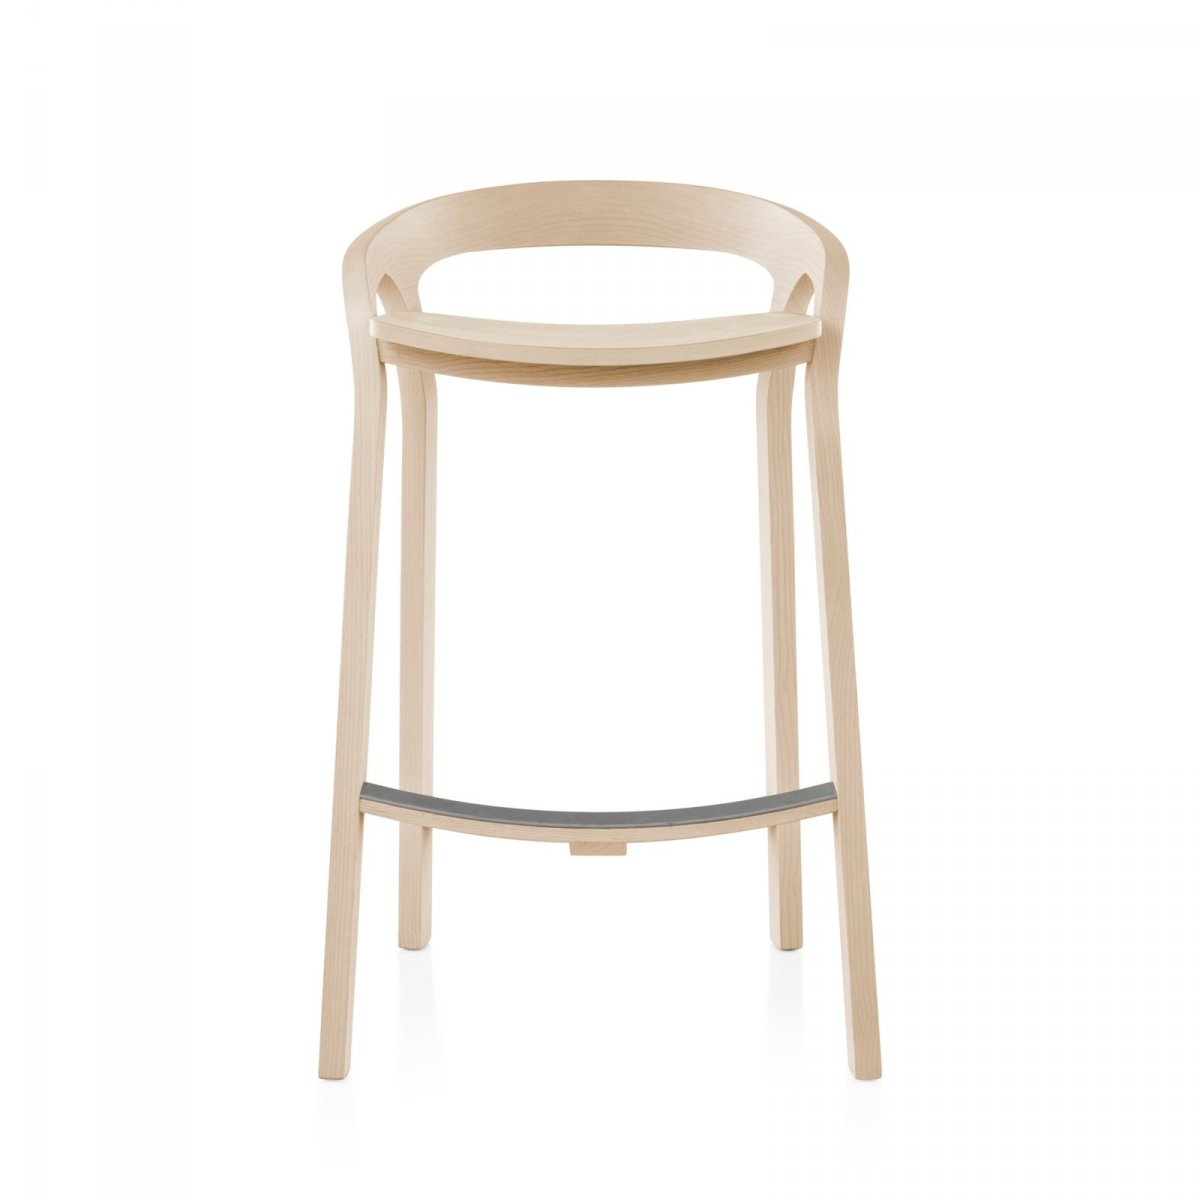 She Said Counter Stool, front view.